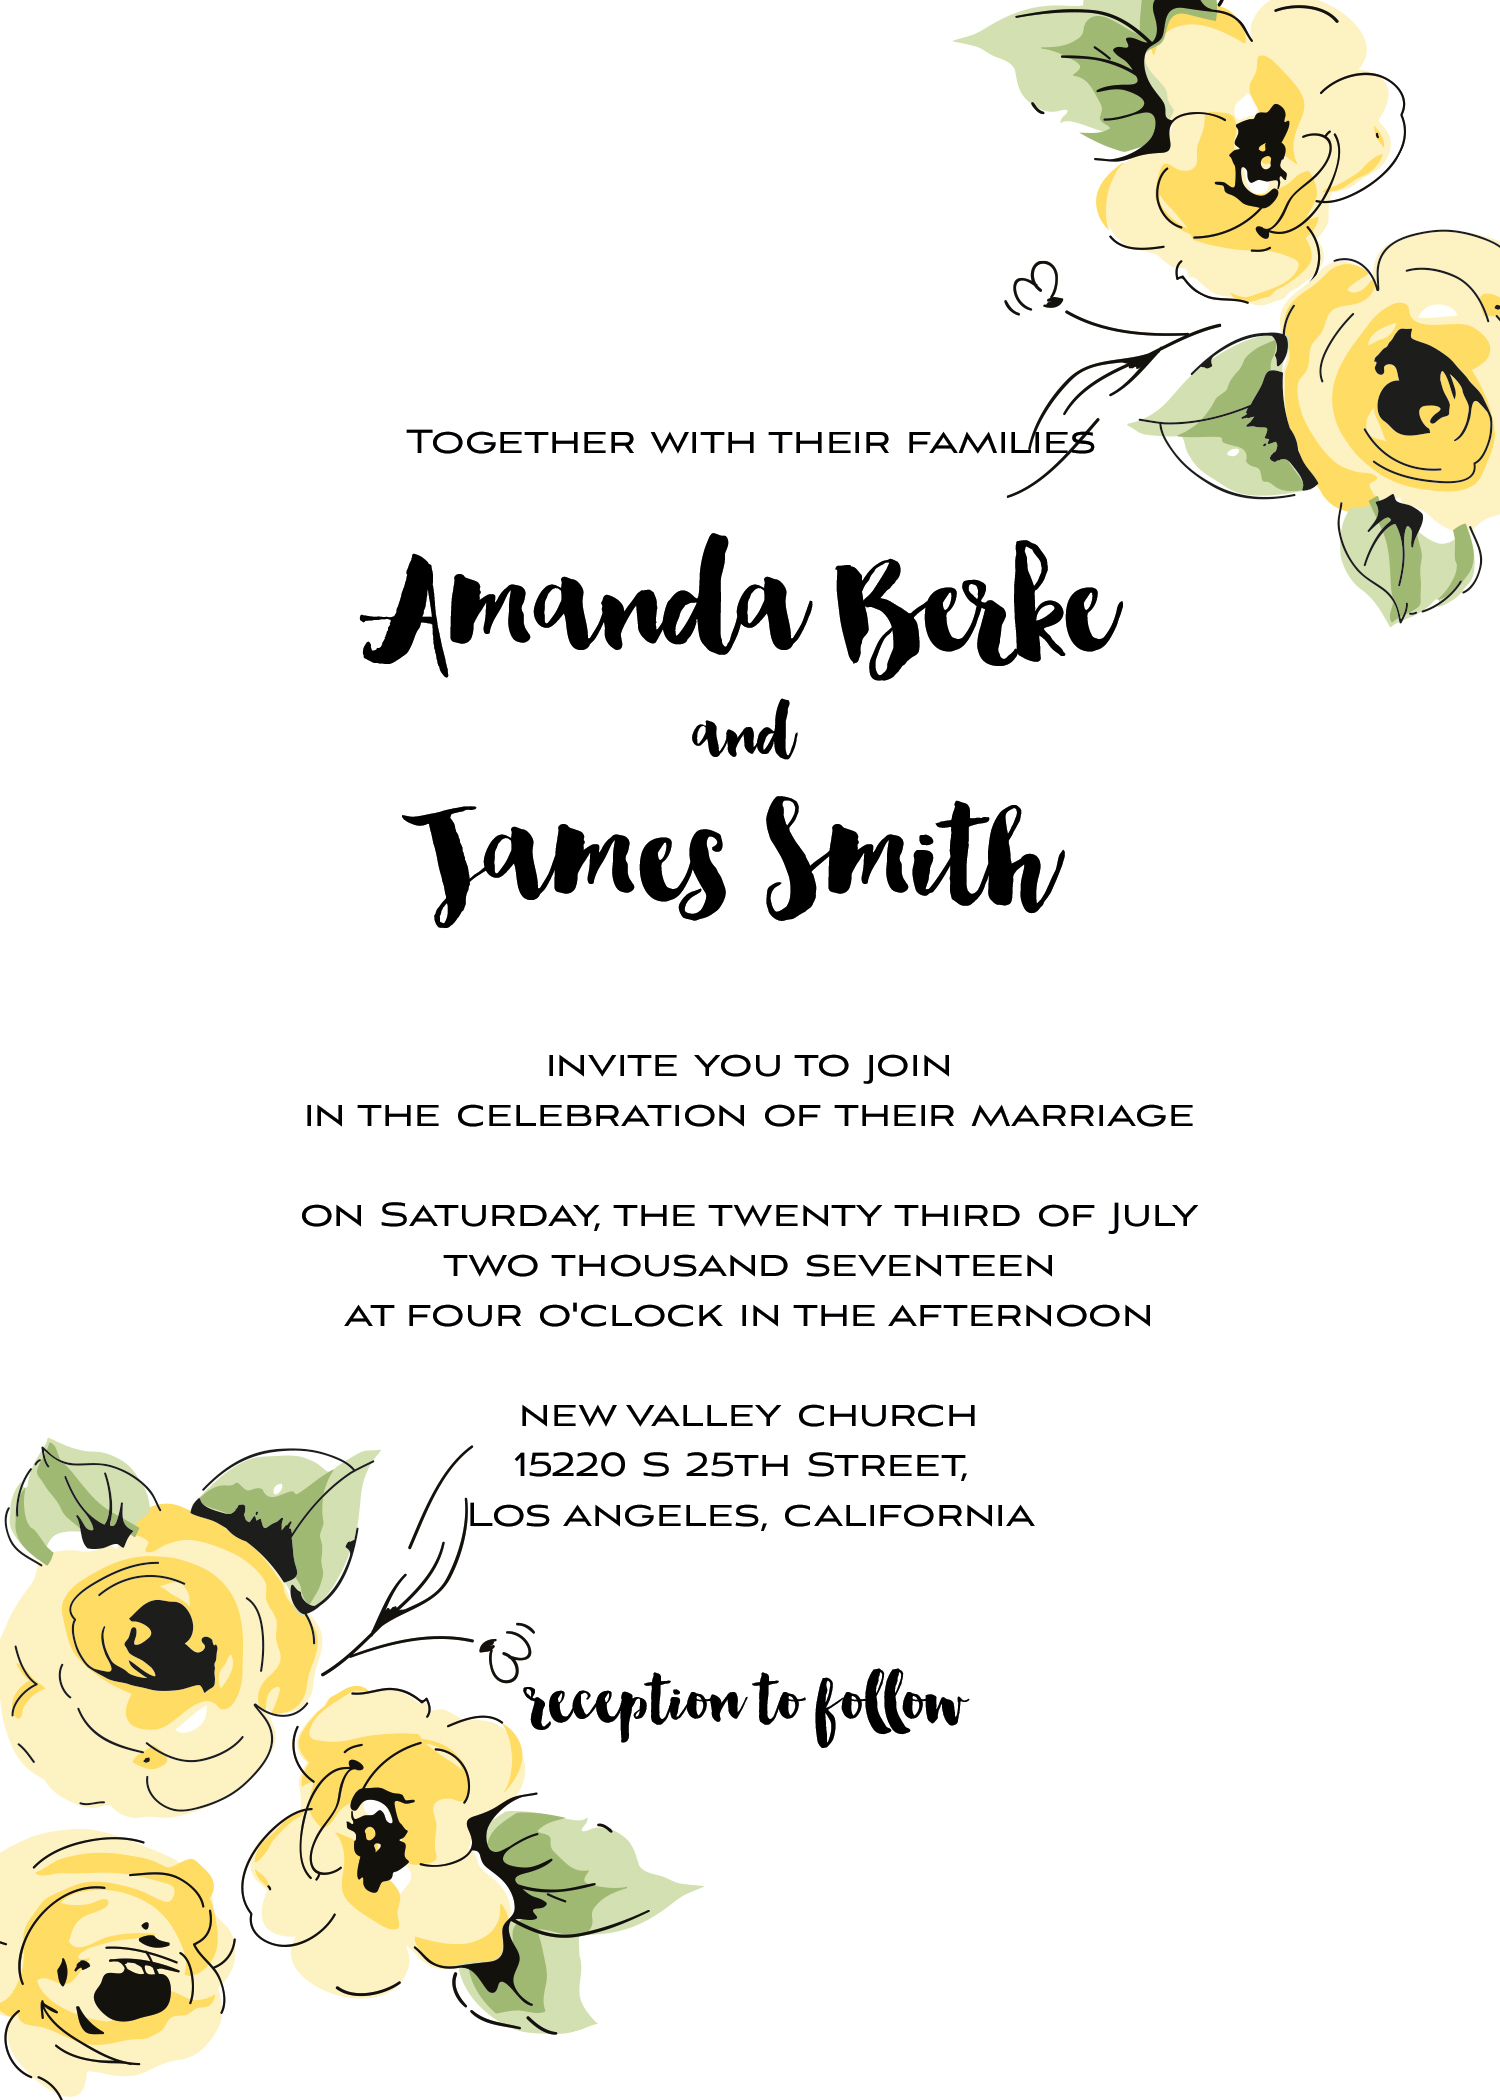 Wedding kit invitation template  11